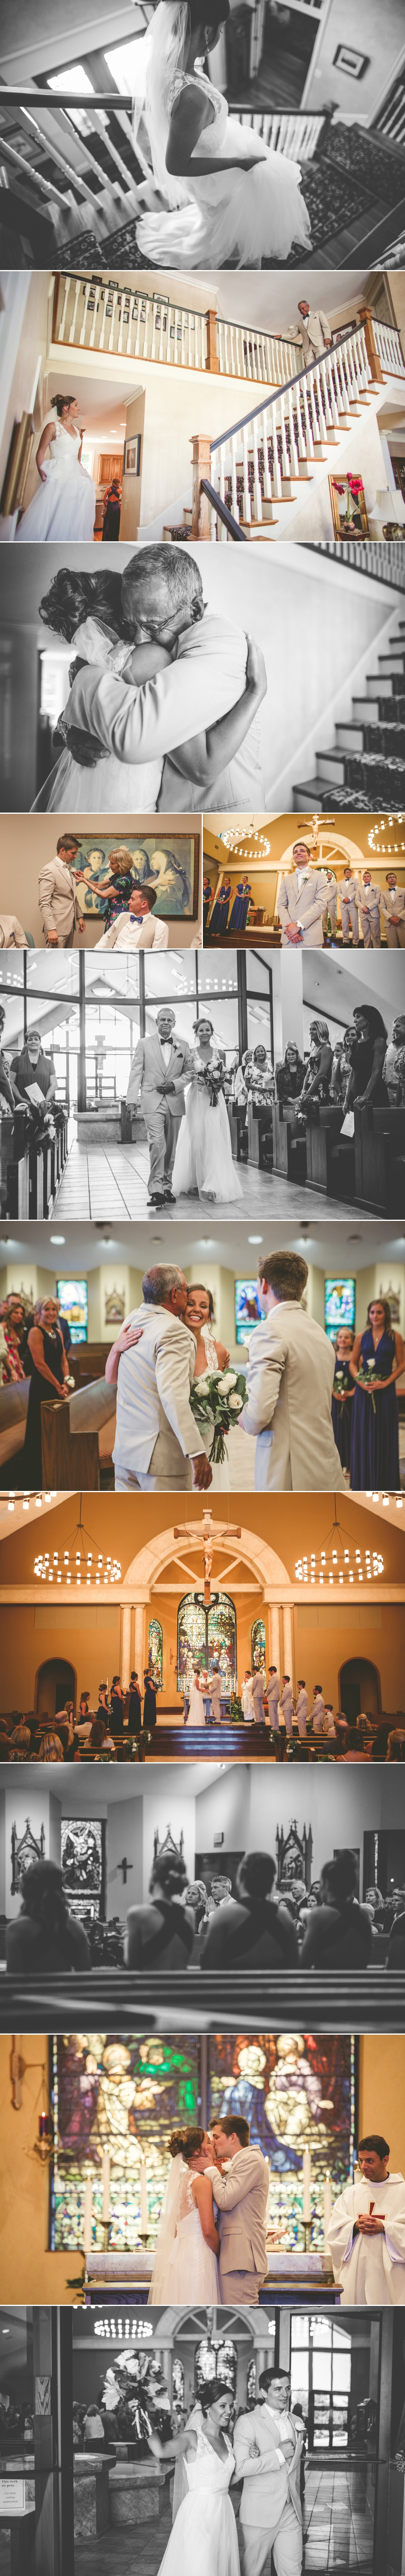 jason_domingues_photography_best_kansas_city_photographer_kc_weddings_bauer_0002.JPG